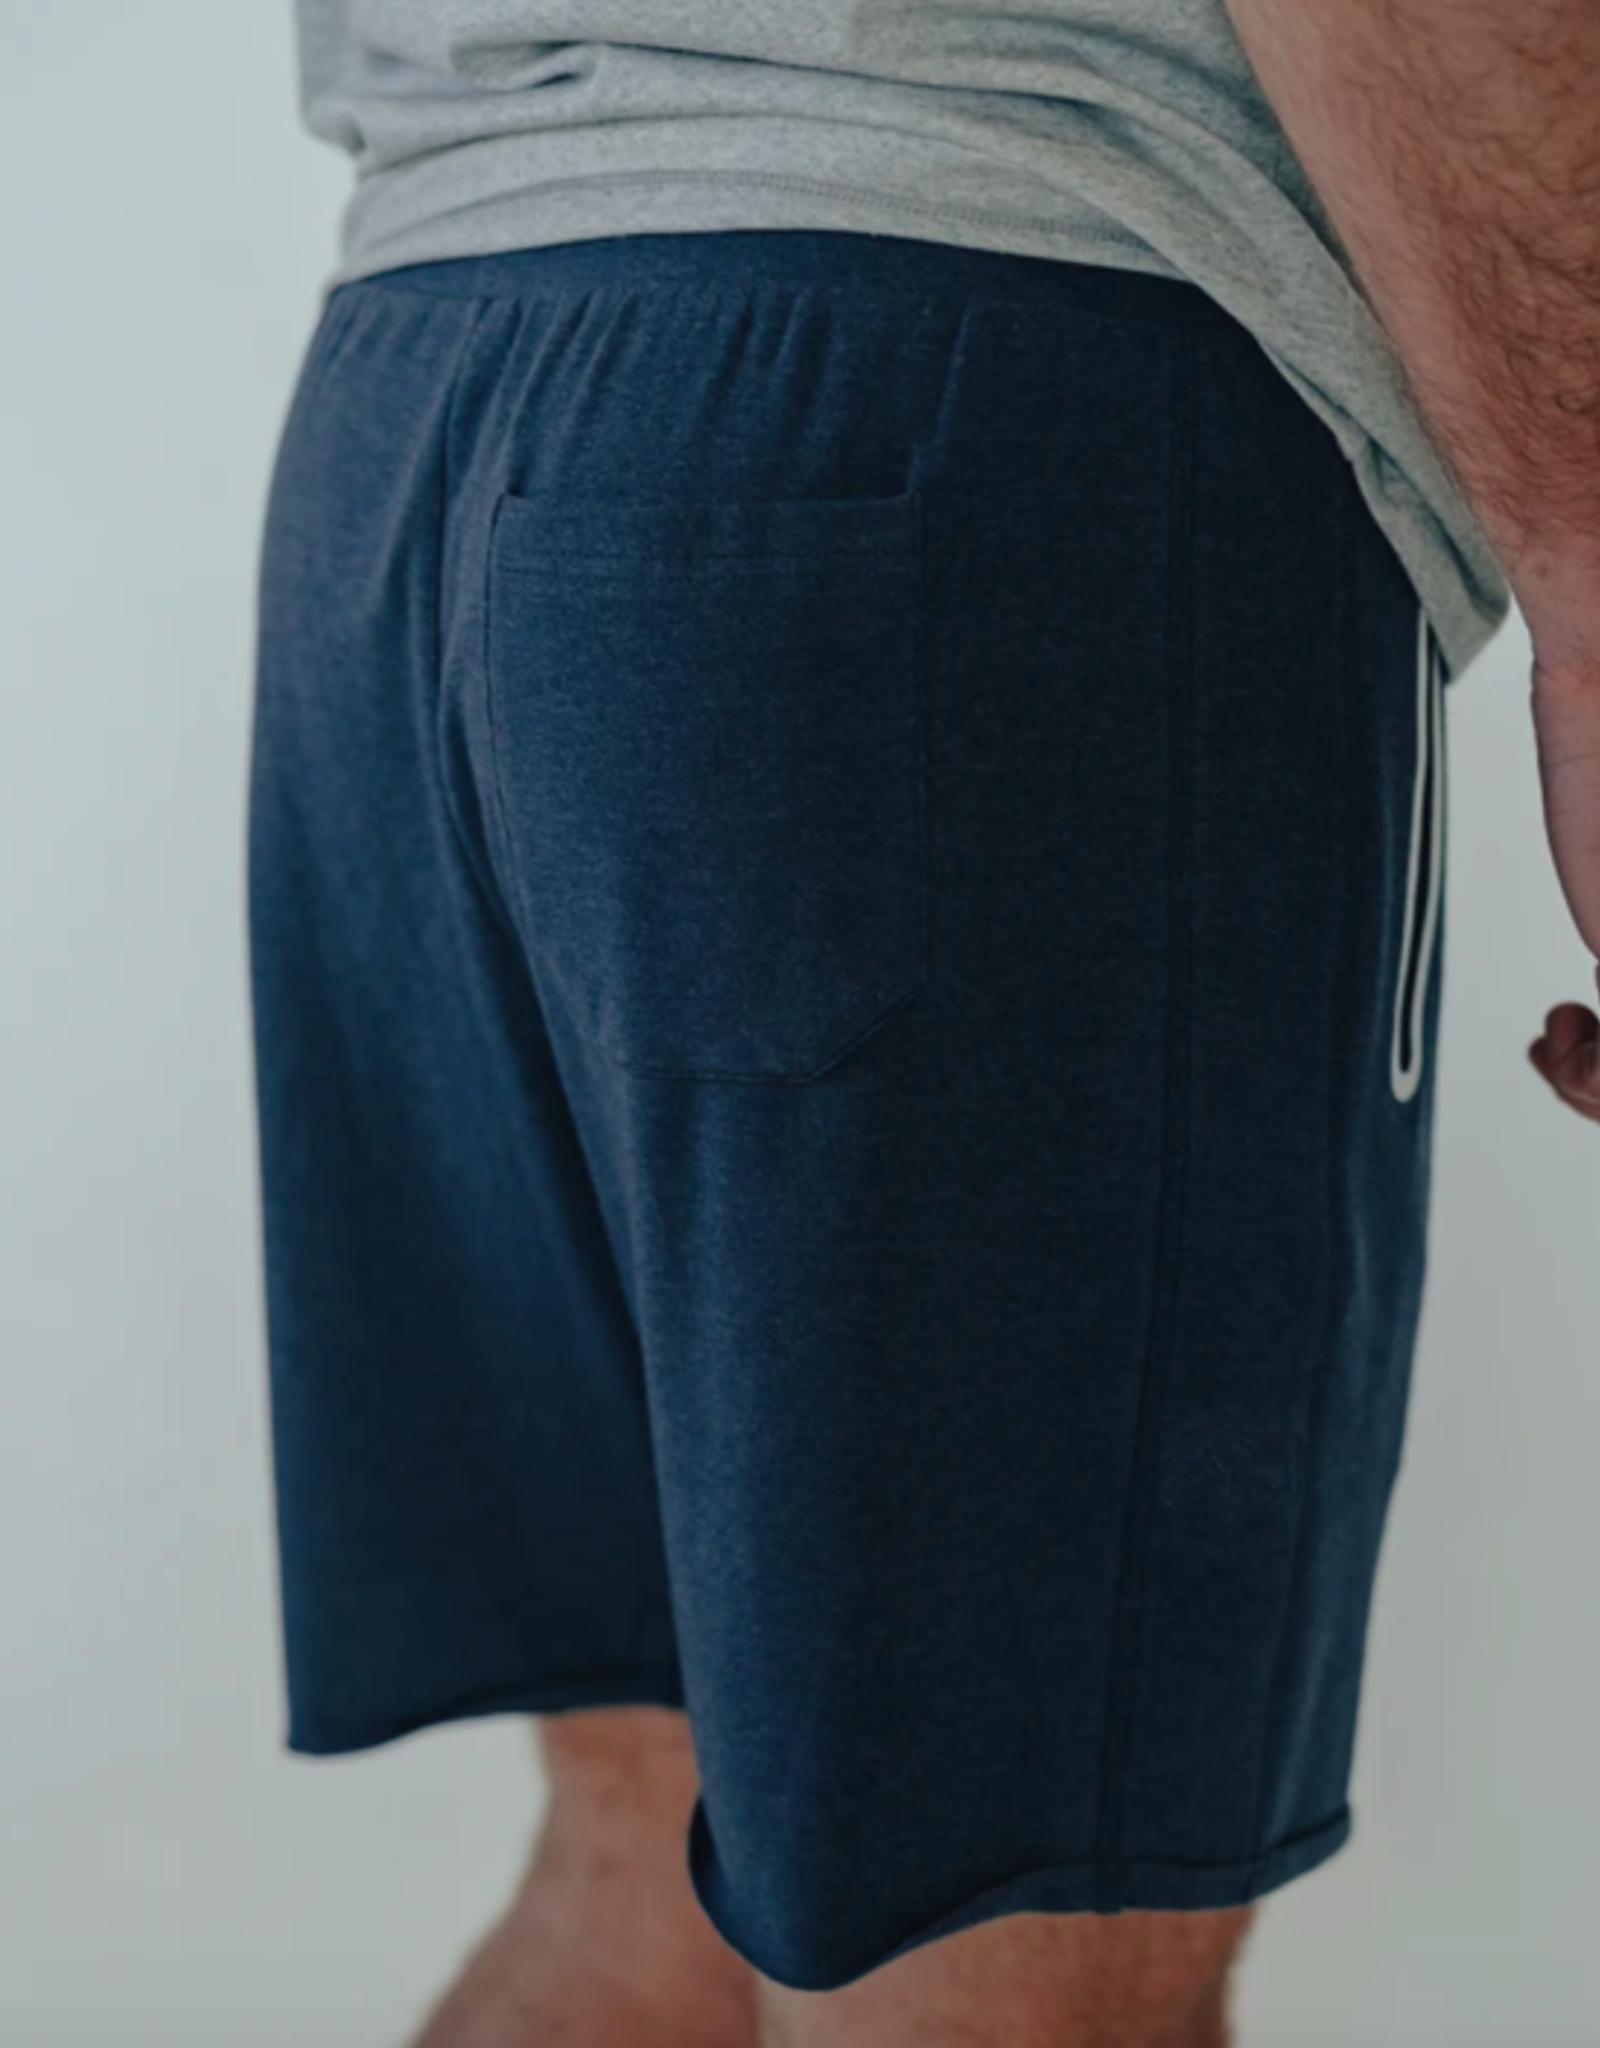 The Normal Brand Active Puremeso Gym Short